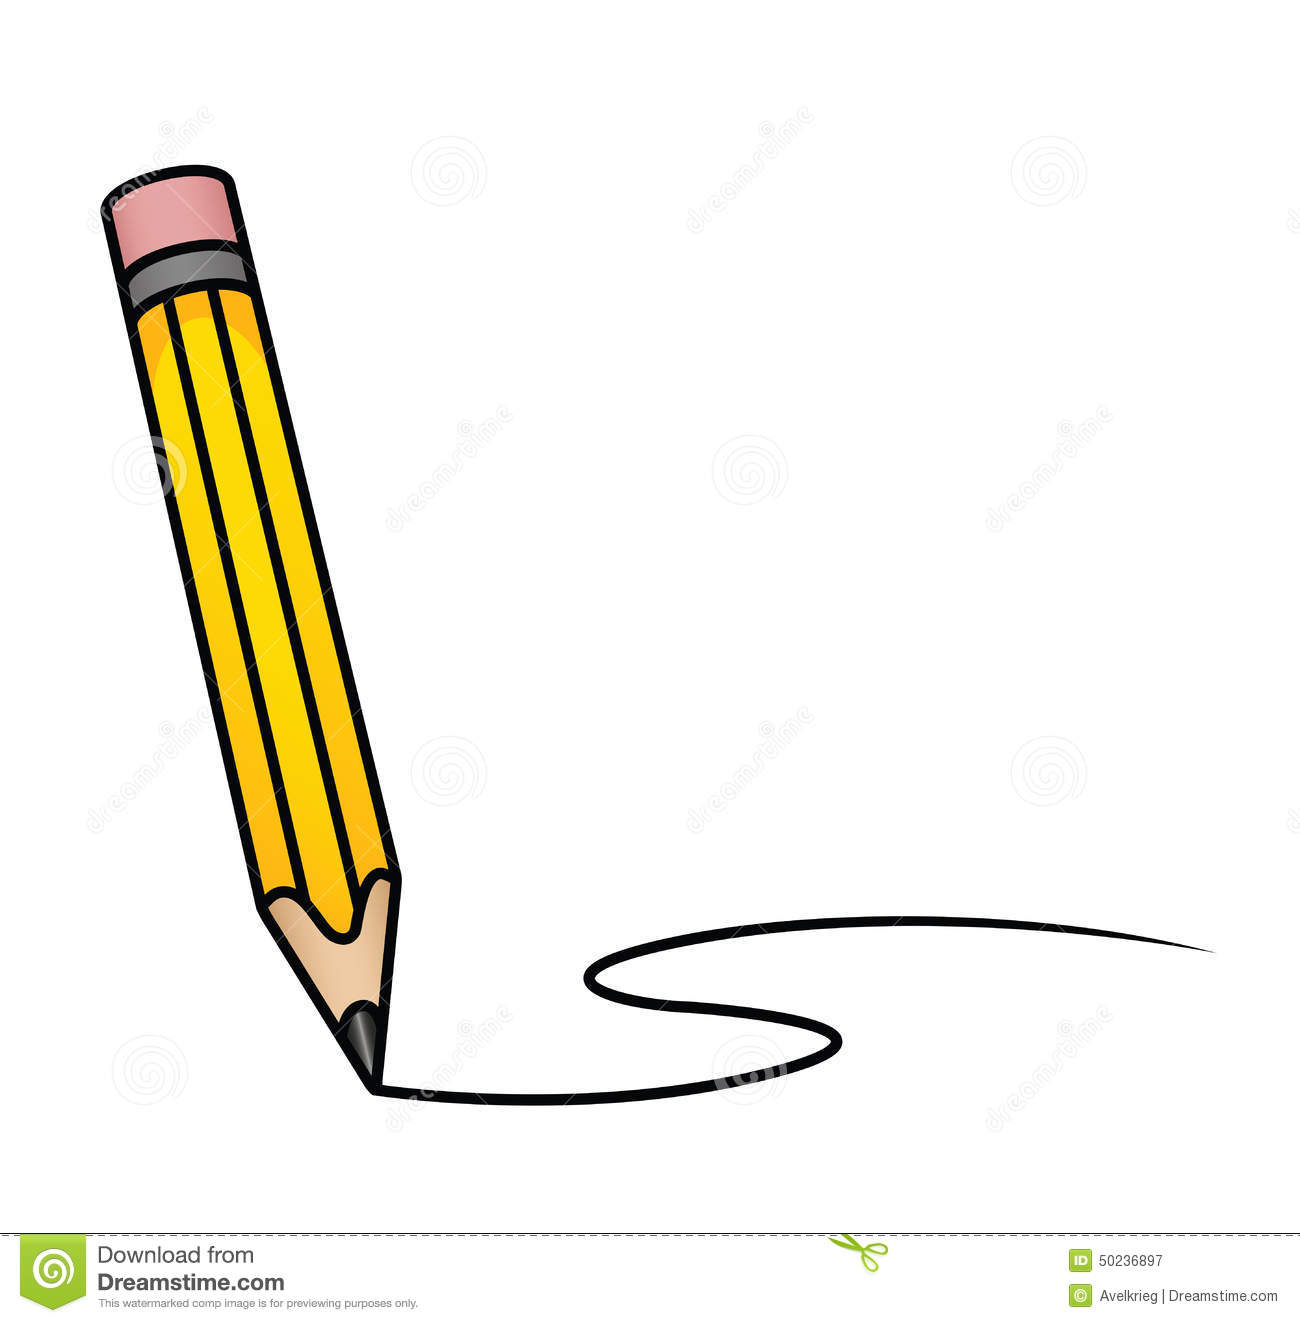 Pencil Drawing Images Cartoons: Cartoon Pencil Stock Vector